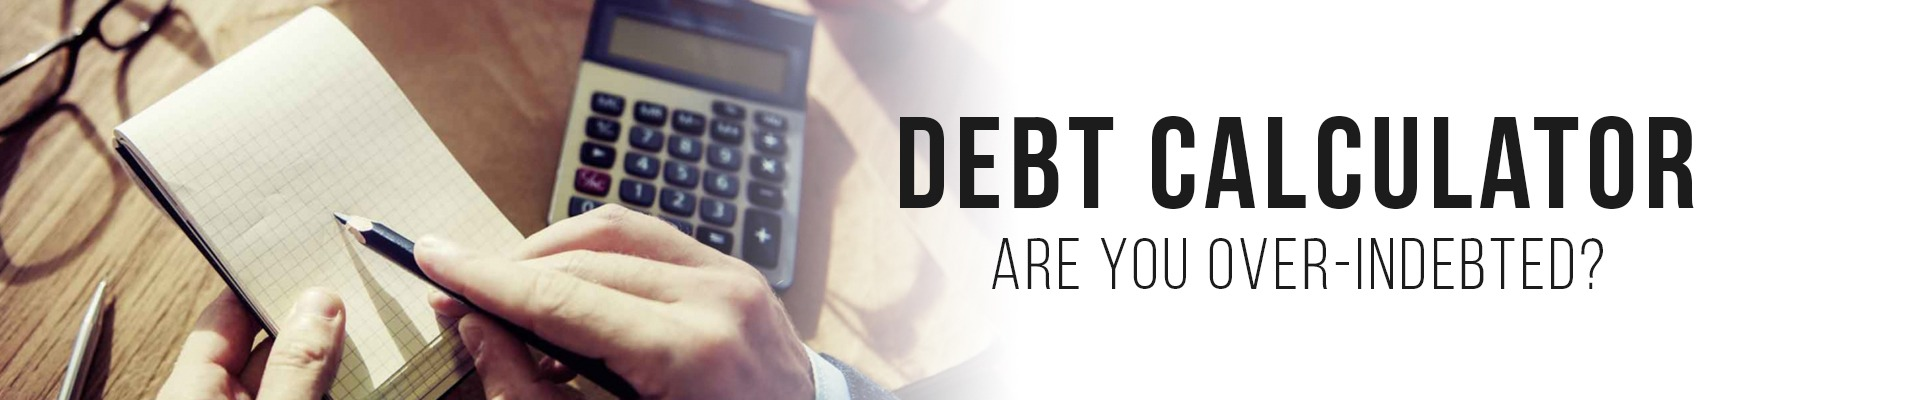 debt-calculator-banner